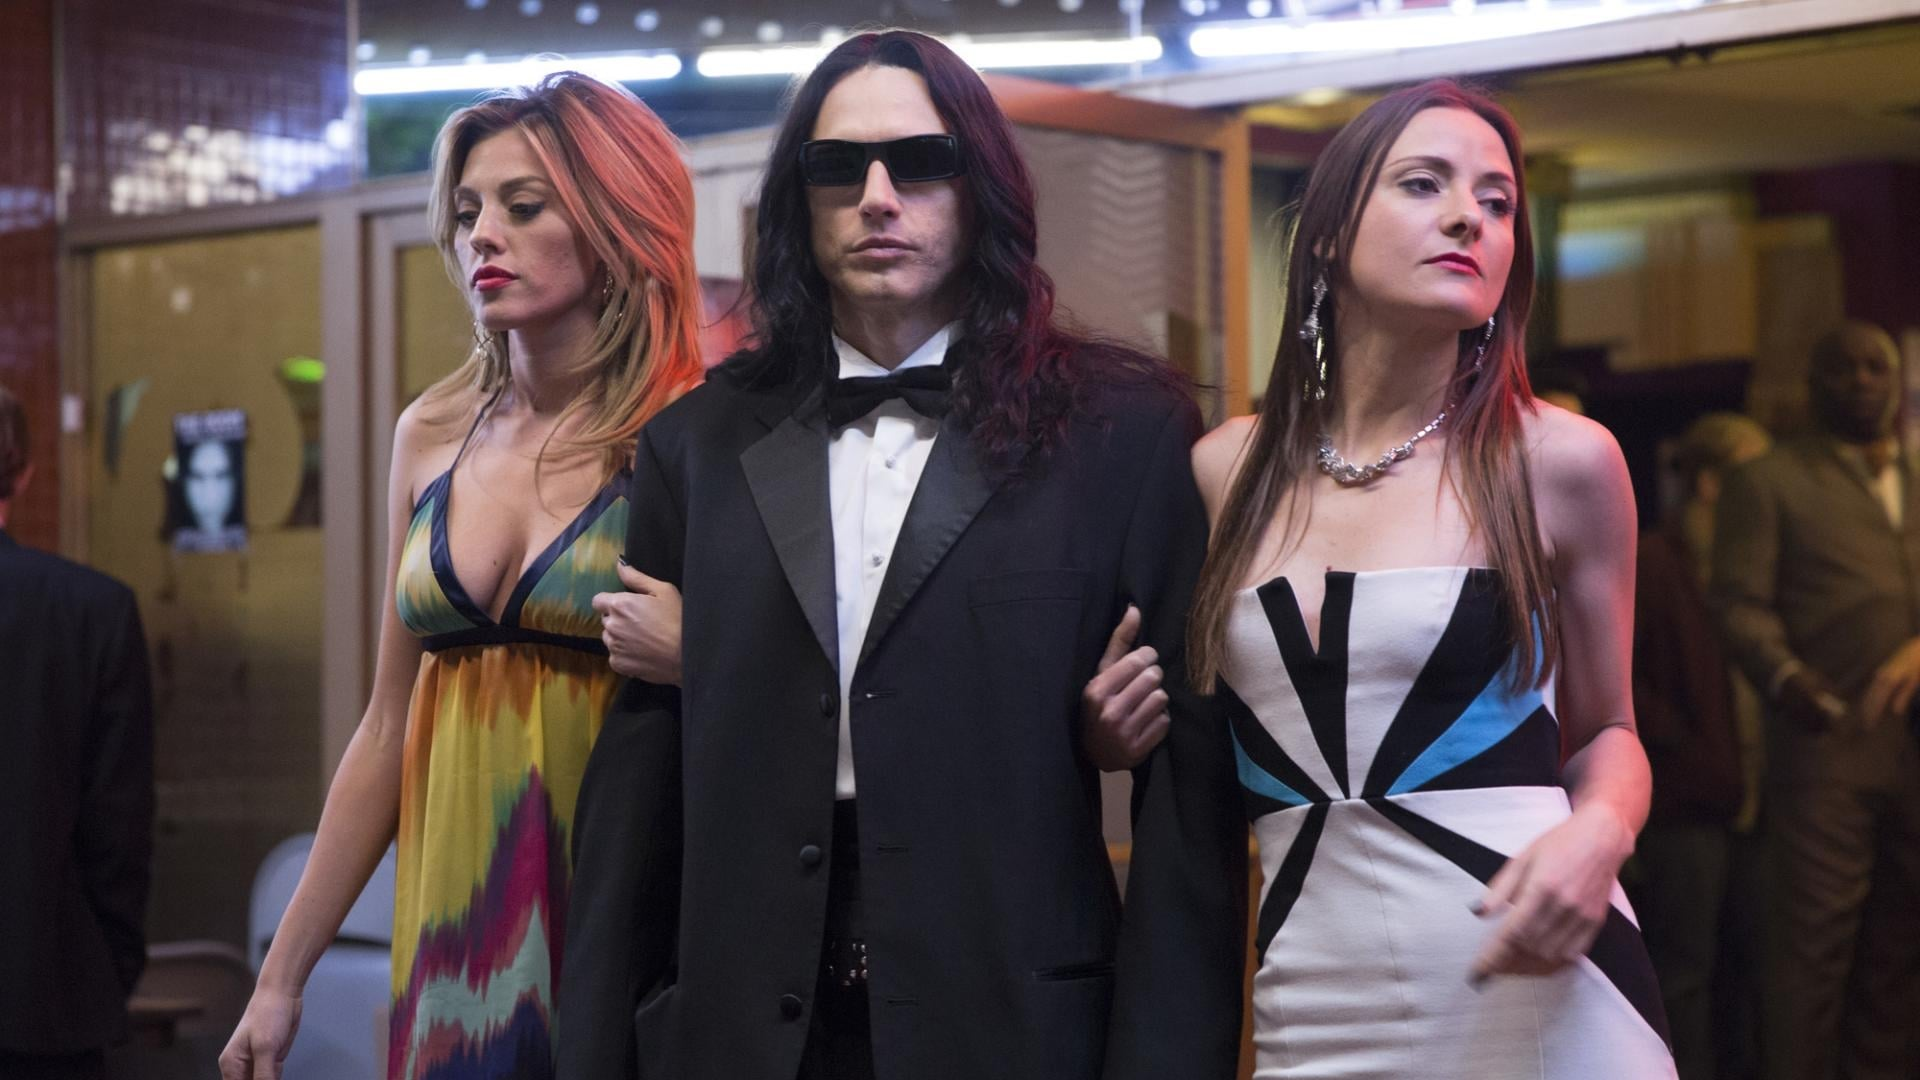 The Disaster Artist Film En Streaming Vf Hd Sur Hds To